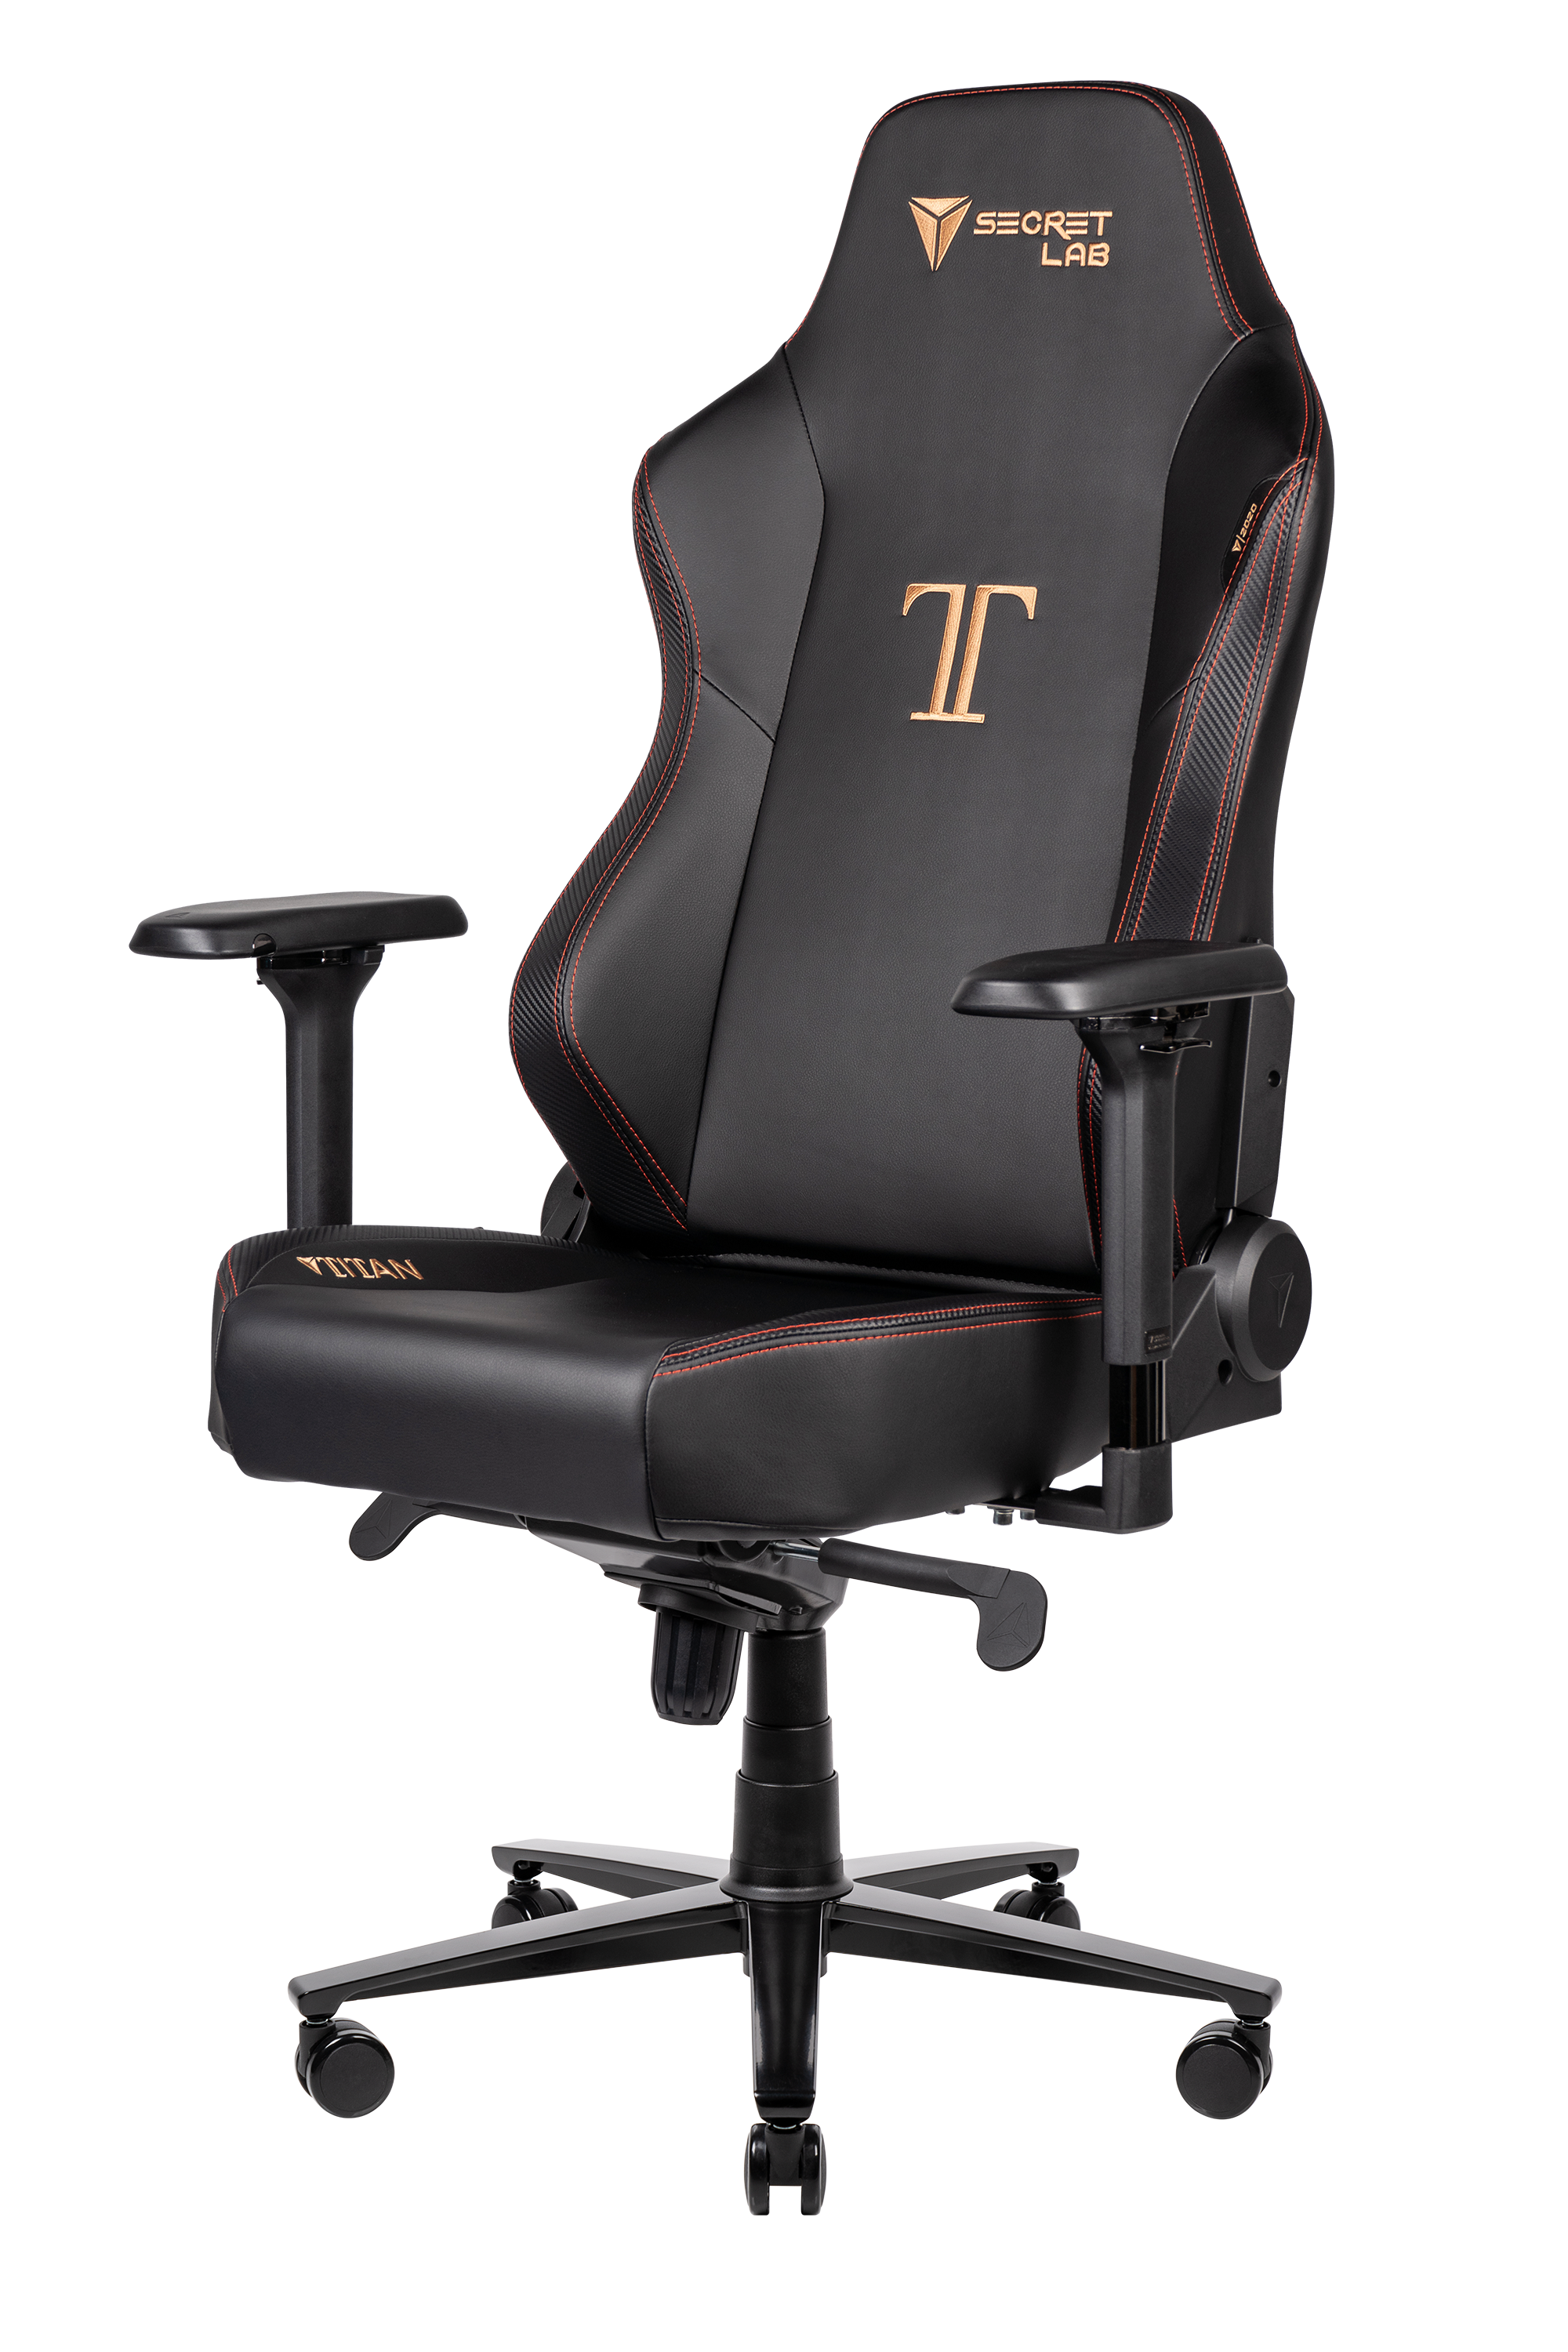 SecretLab Titan 2020 Series Review The AllNew Favorite